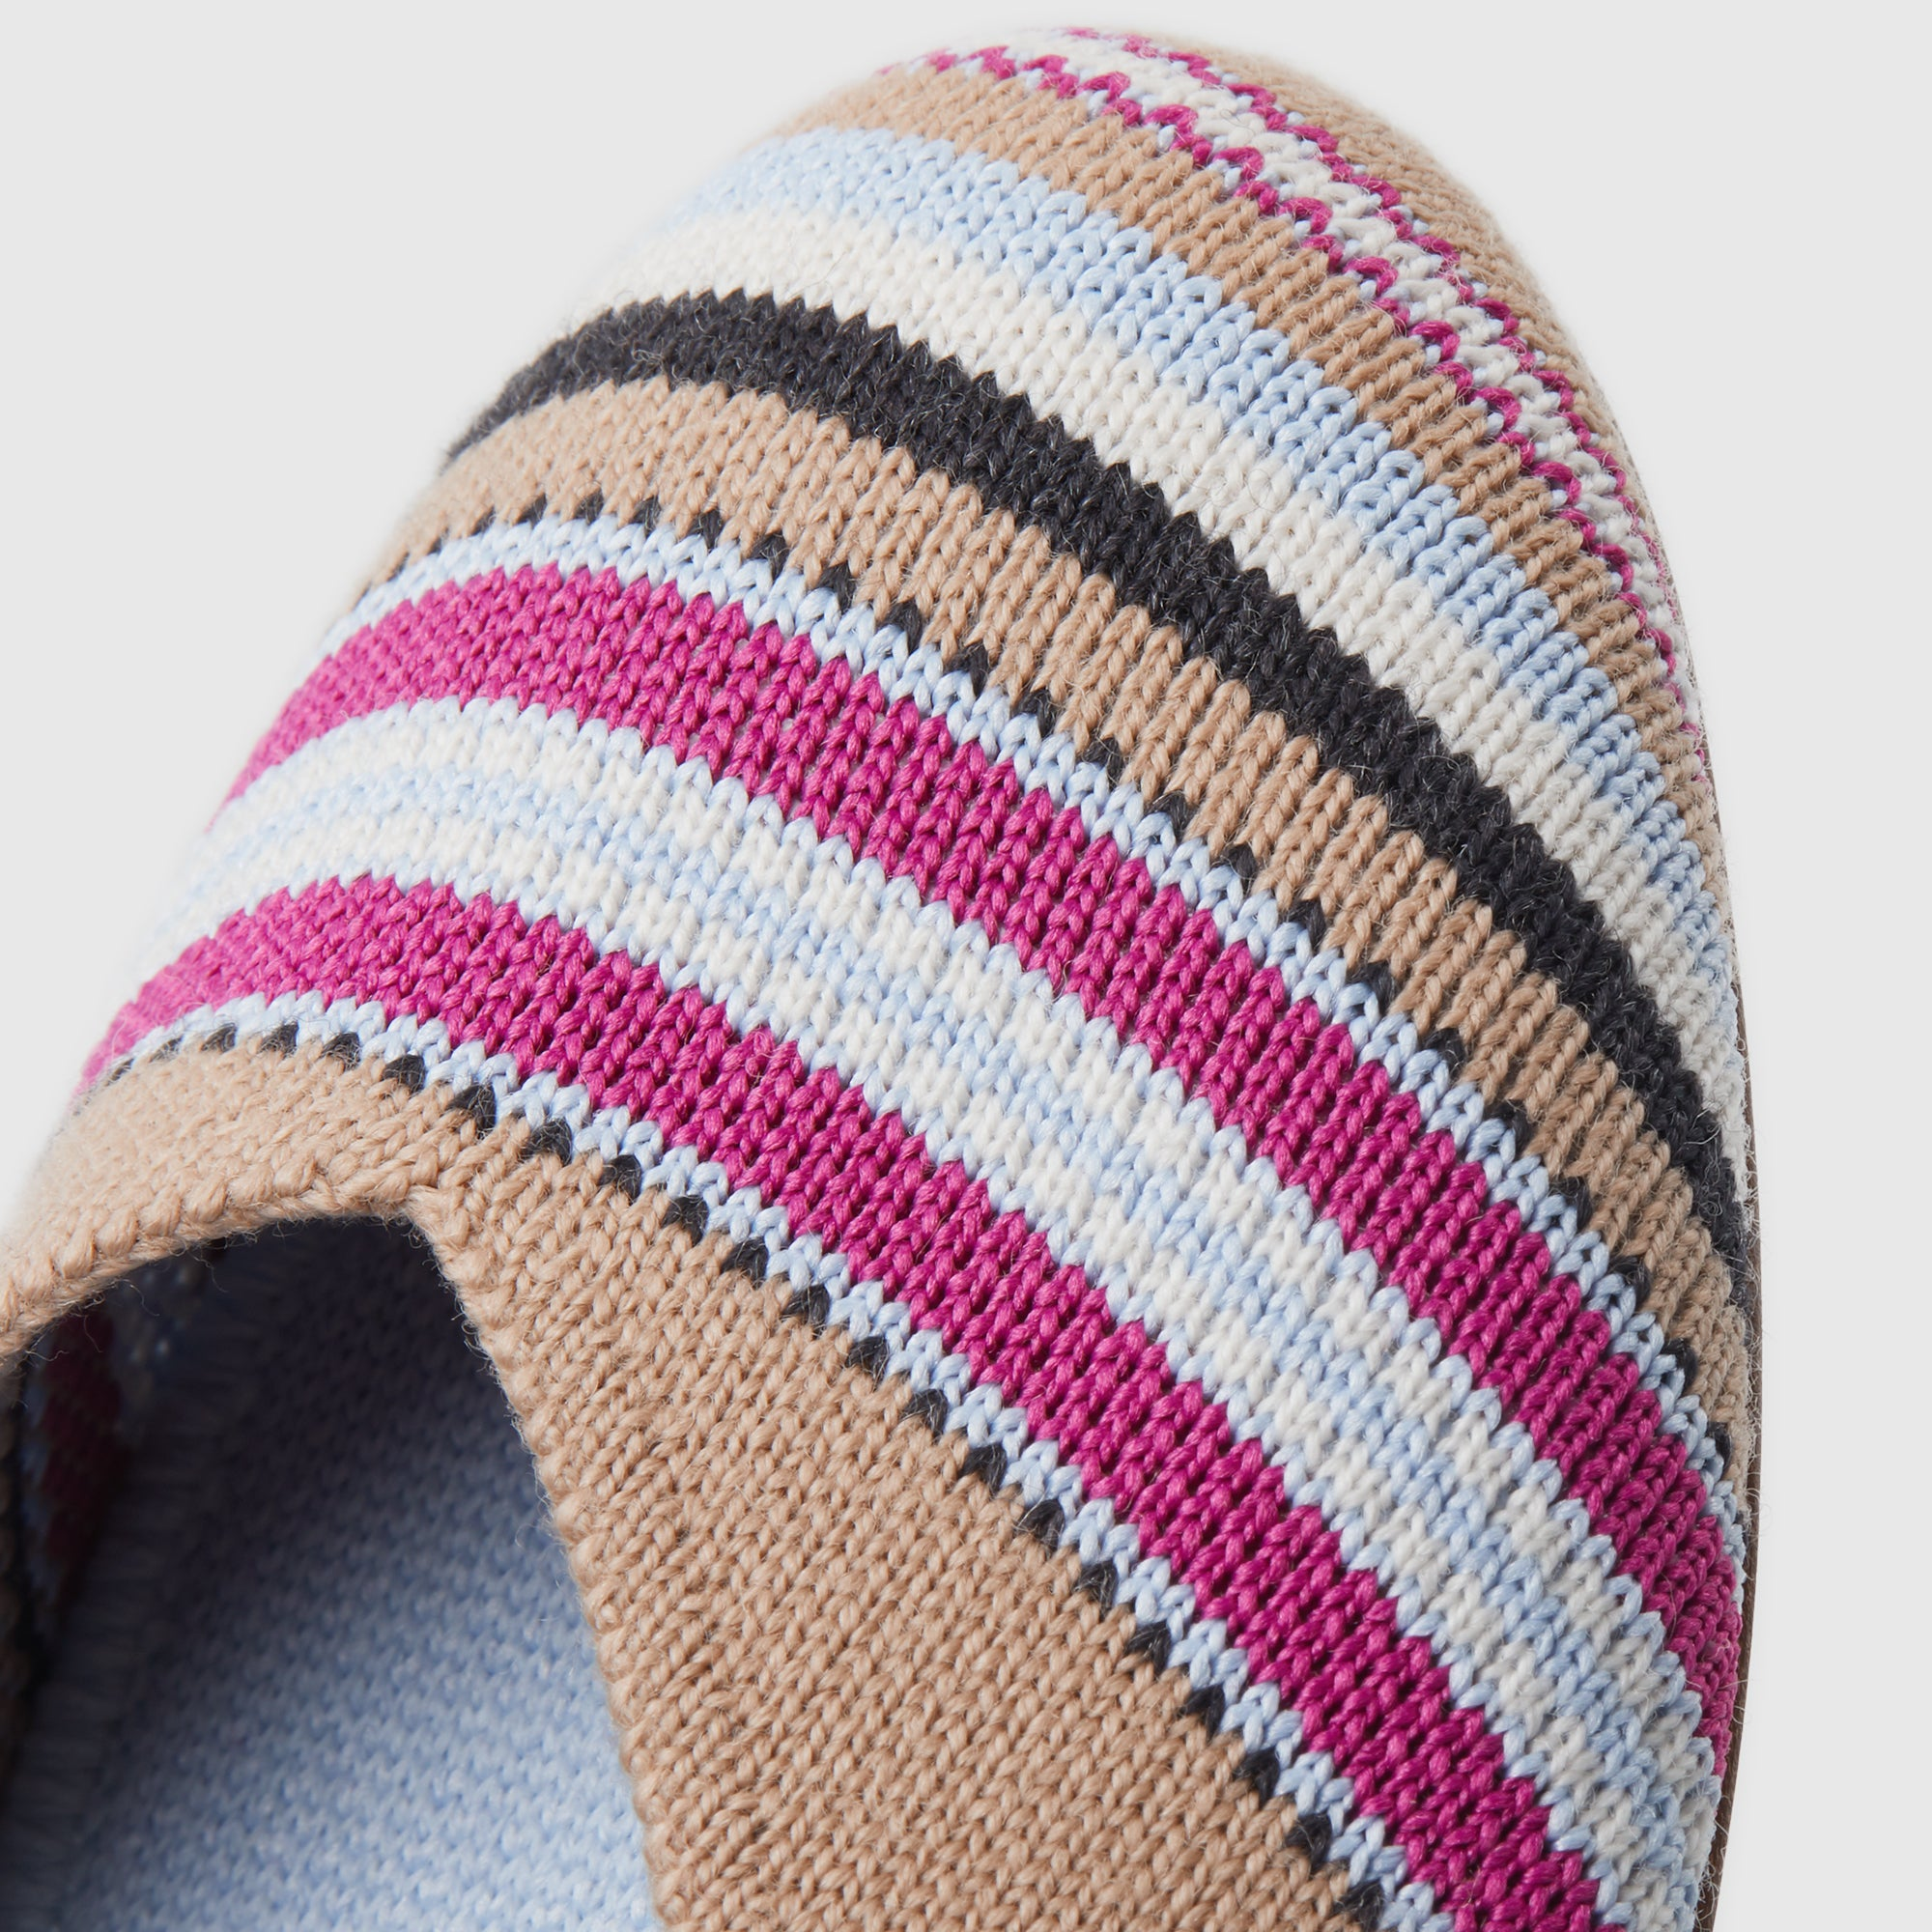 The Merino Flat in Camel Ribbon Stripe shown in detail.